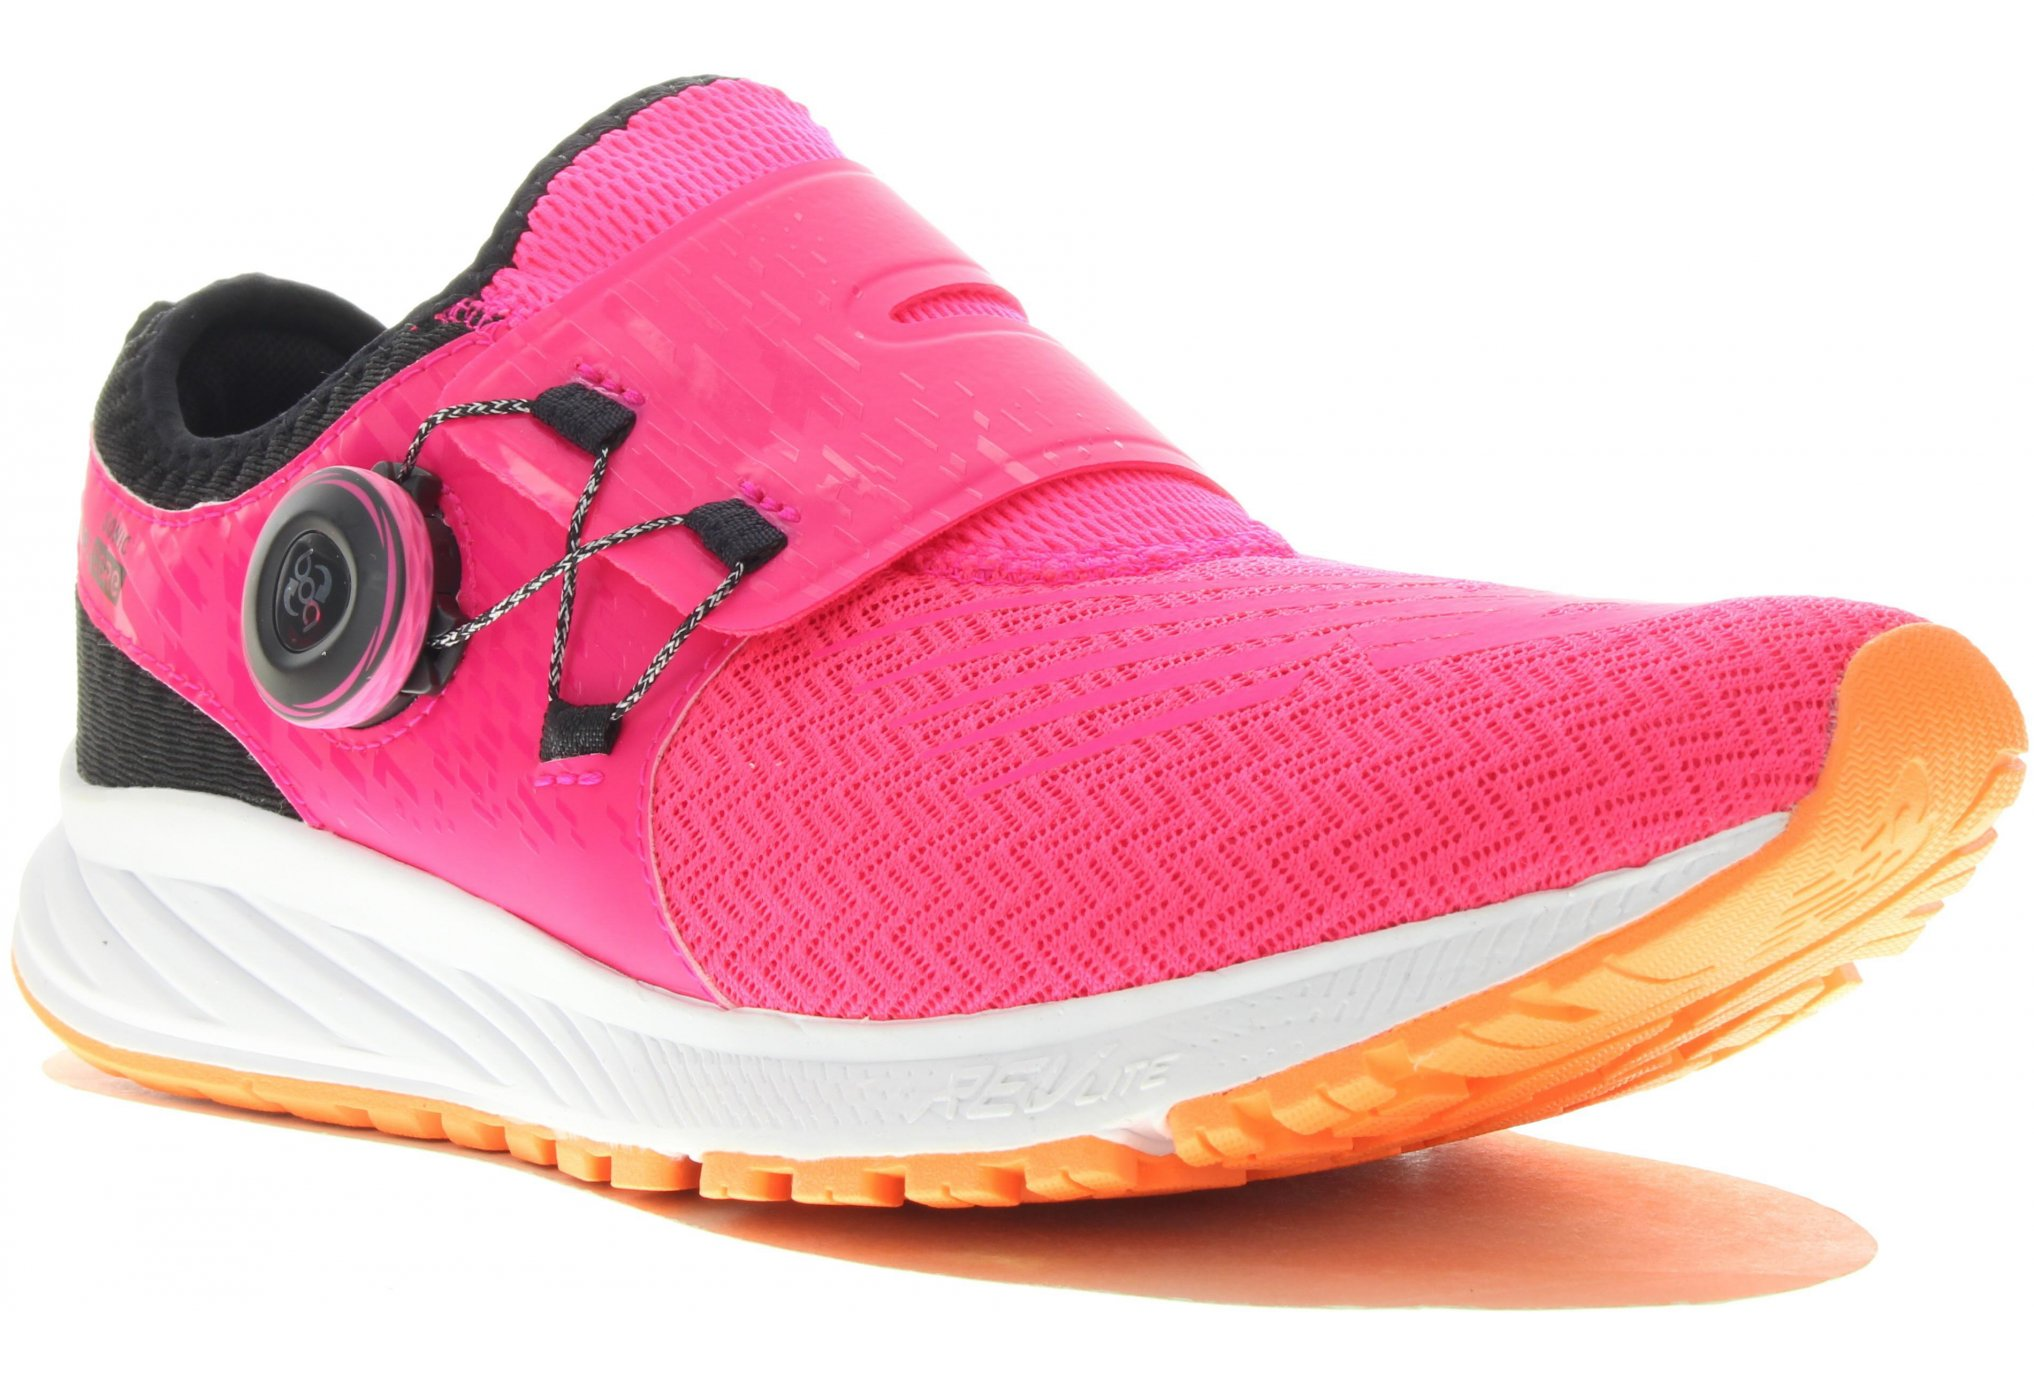 New Balance FuelCore Sonic W Chaussures running femme